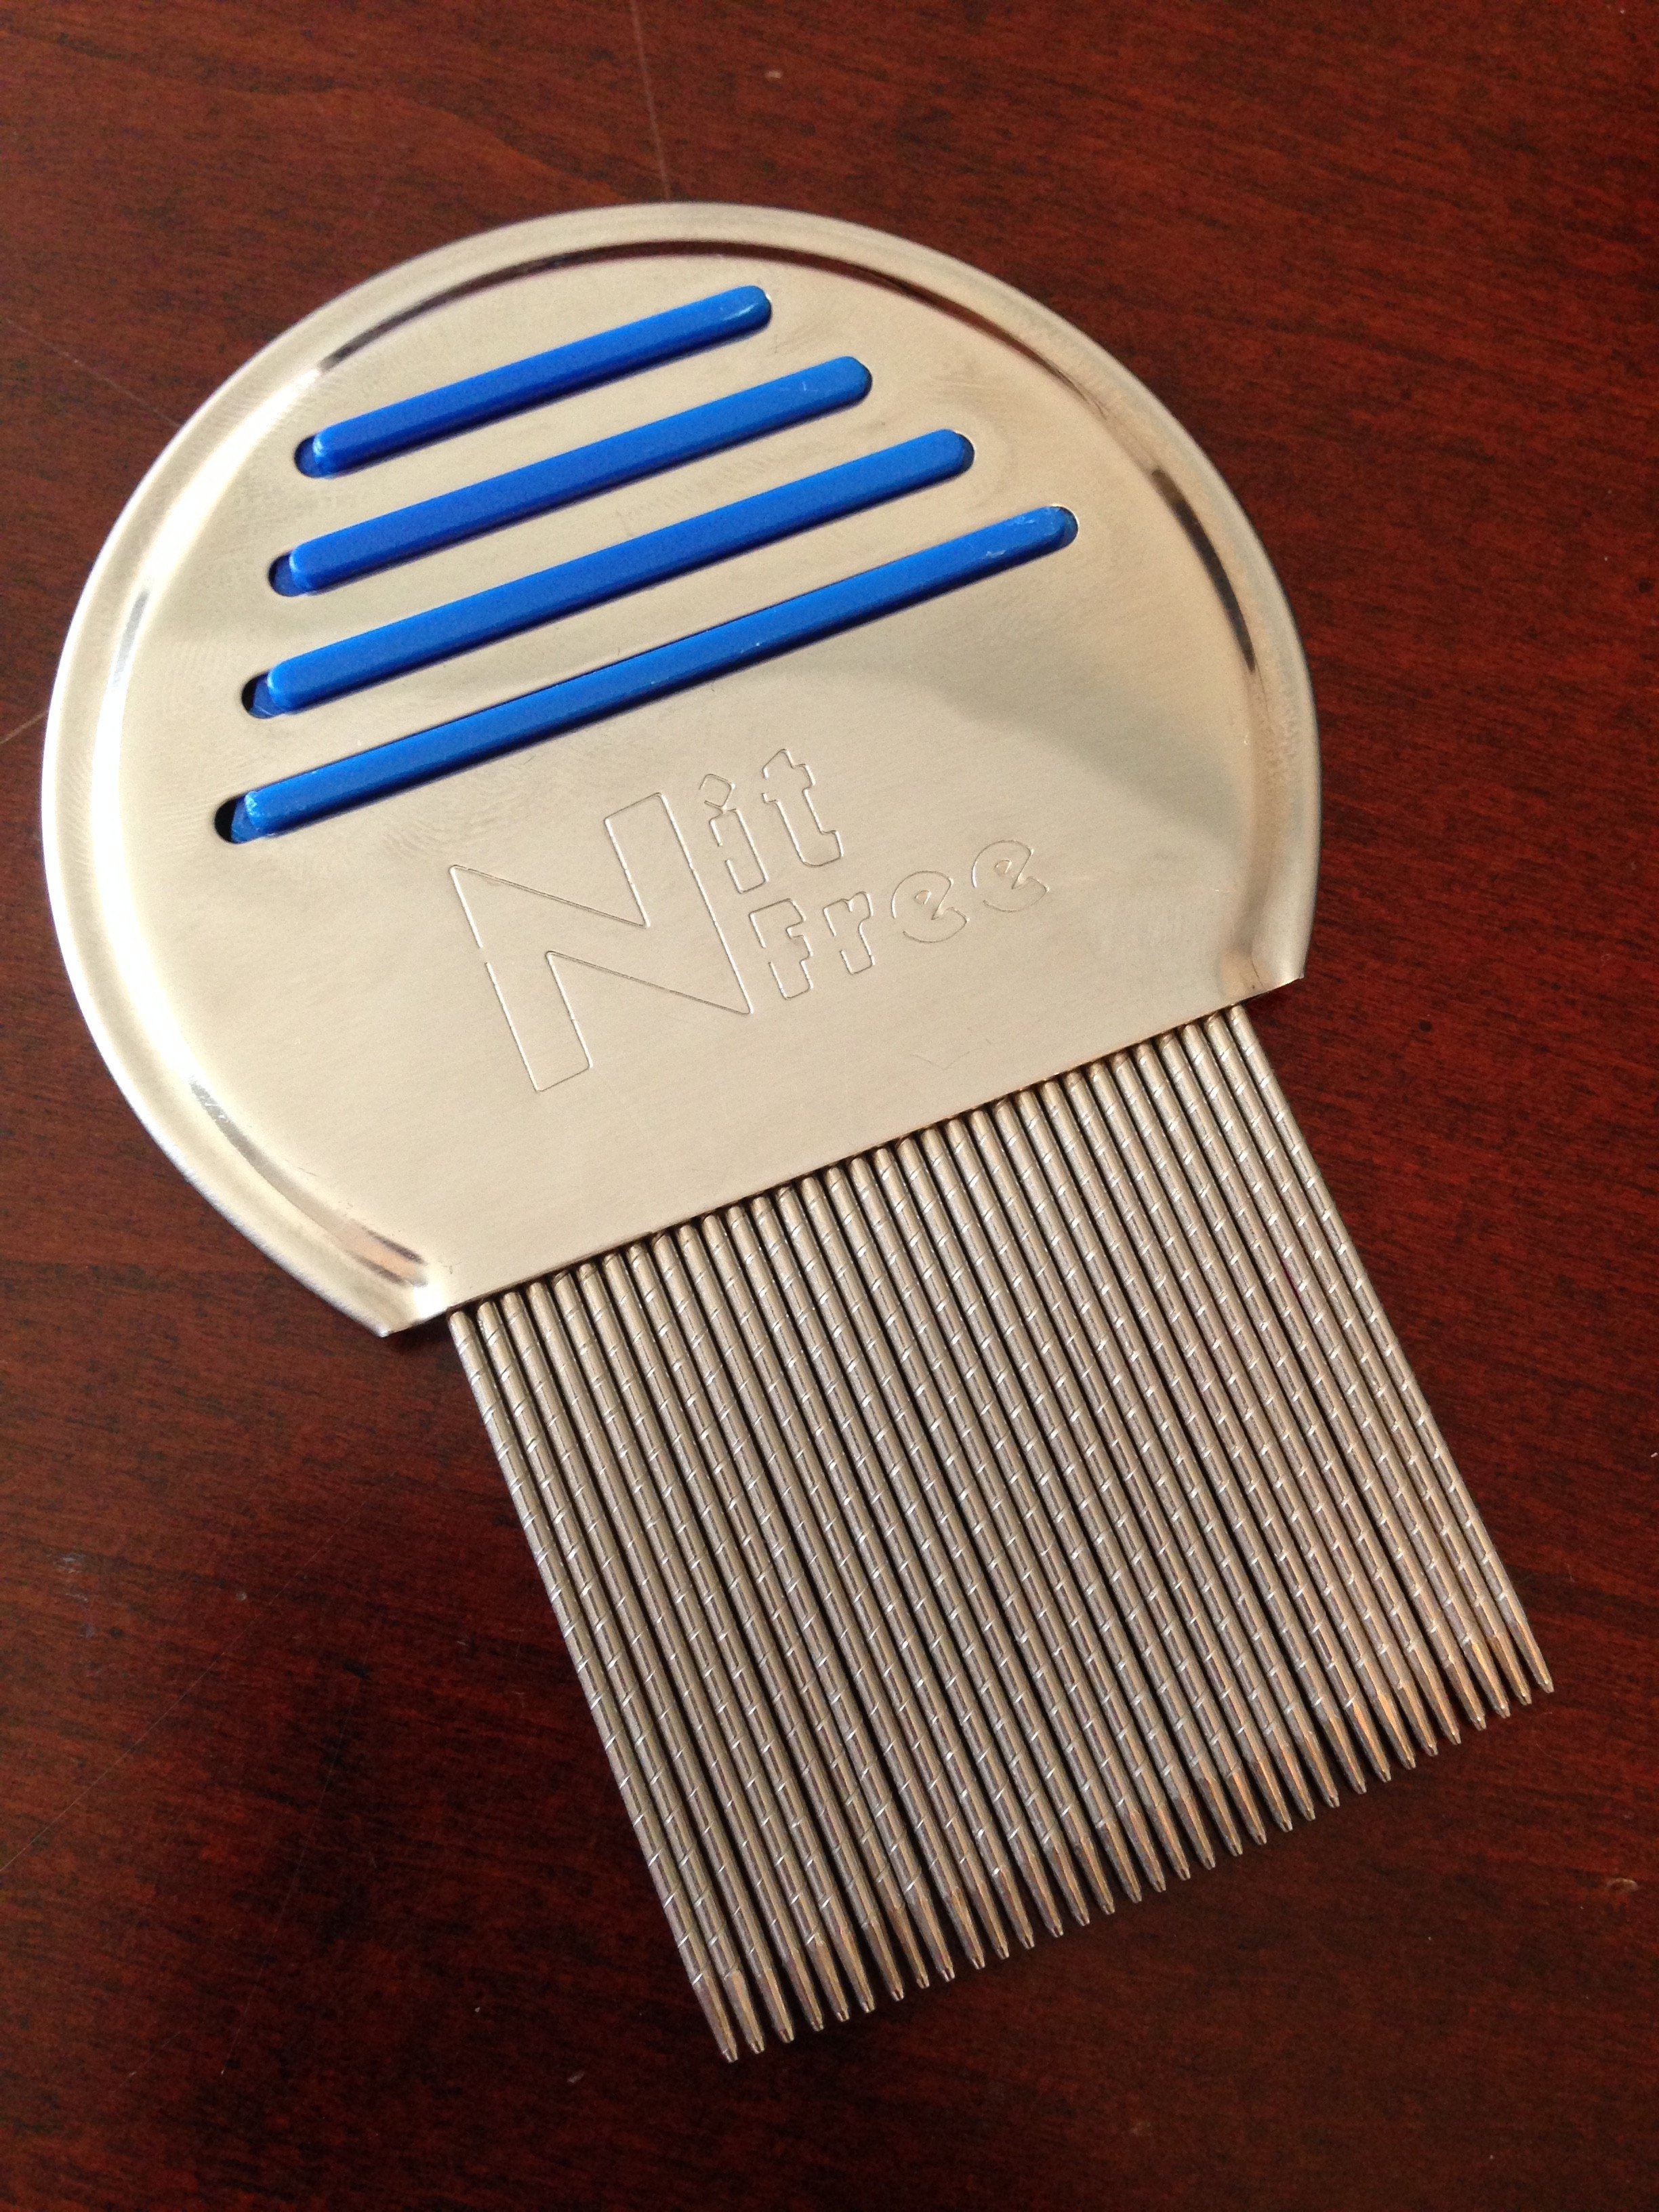 Head lice comb, captures the nits and pulls them out/